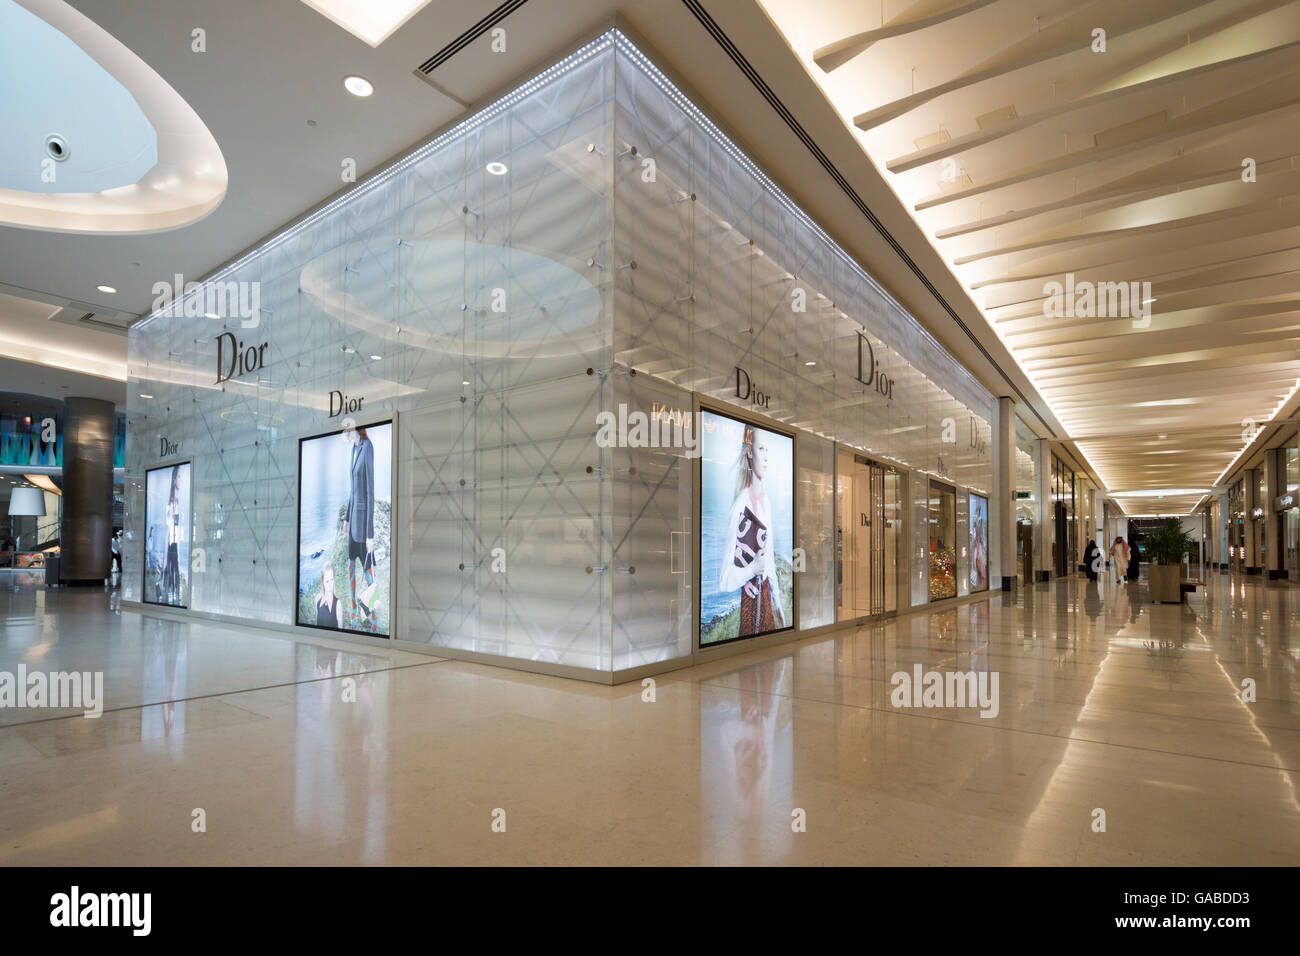 Dior shop, MODA Mall, Bahrain World Trade Center, Manama, Bahrain. Immagini Stock